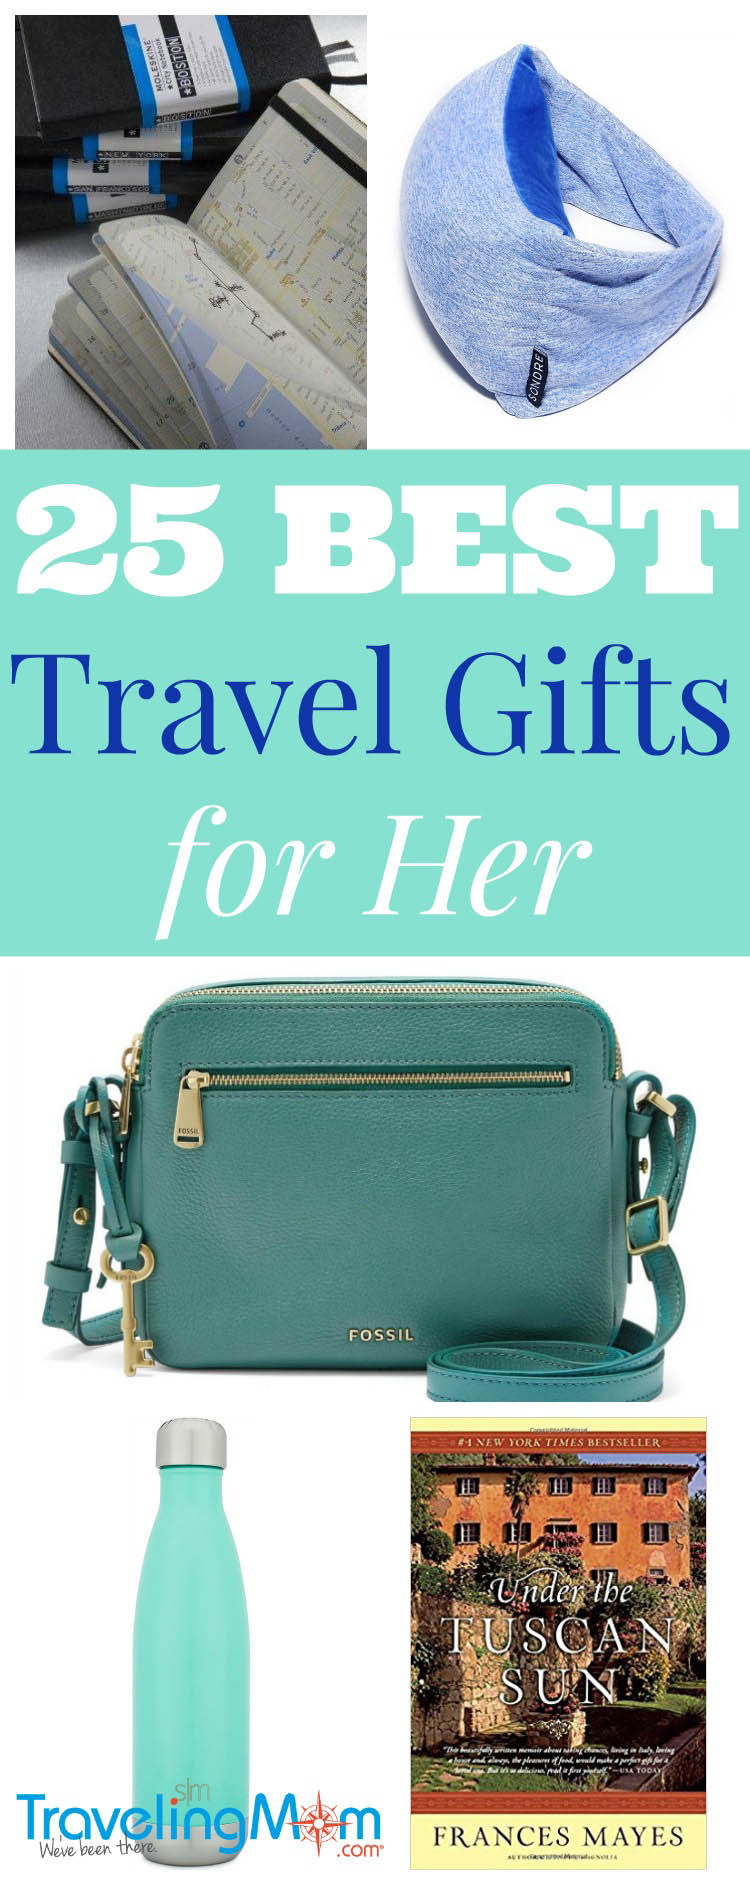 Best travel gift ideas for her - from tech gifts to travel accessories to gifts that inspire, these 25 gift ideas are the favorite must-have travel items for Traveling Moms everywhere!